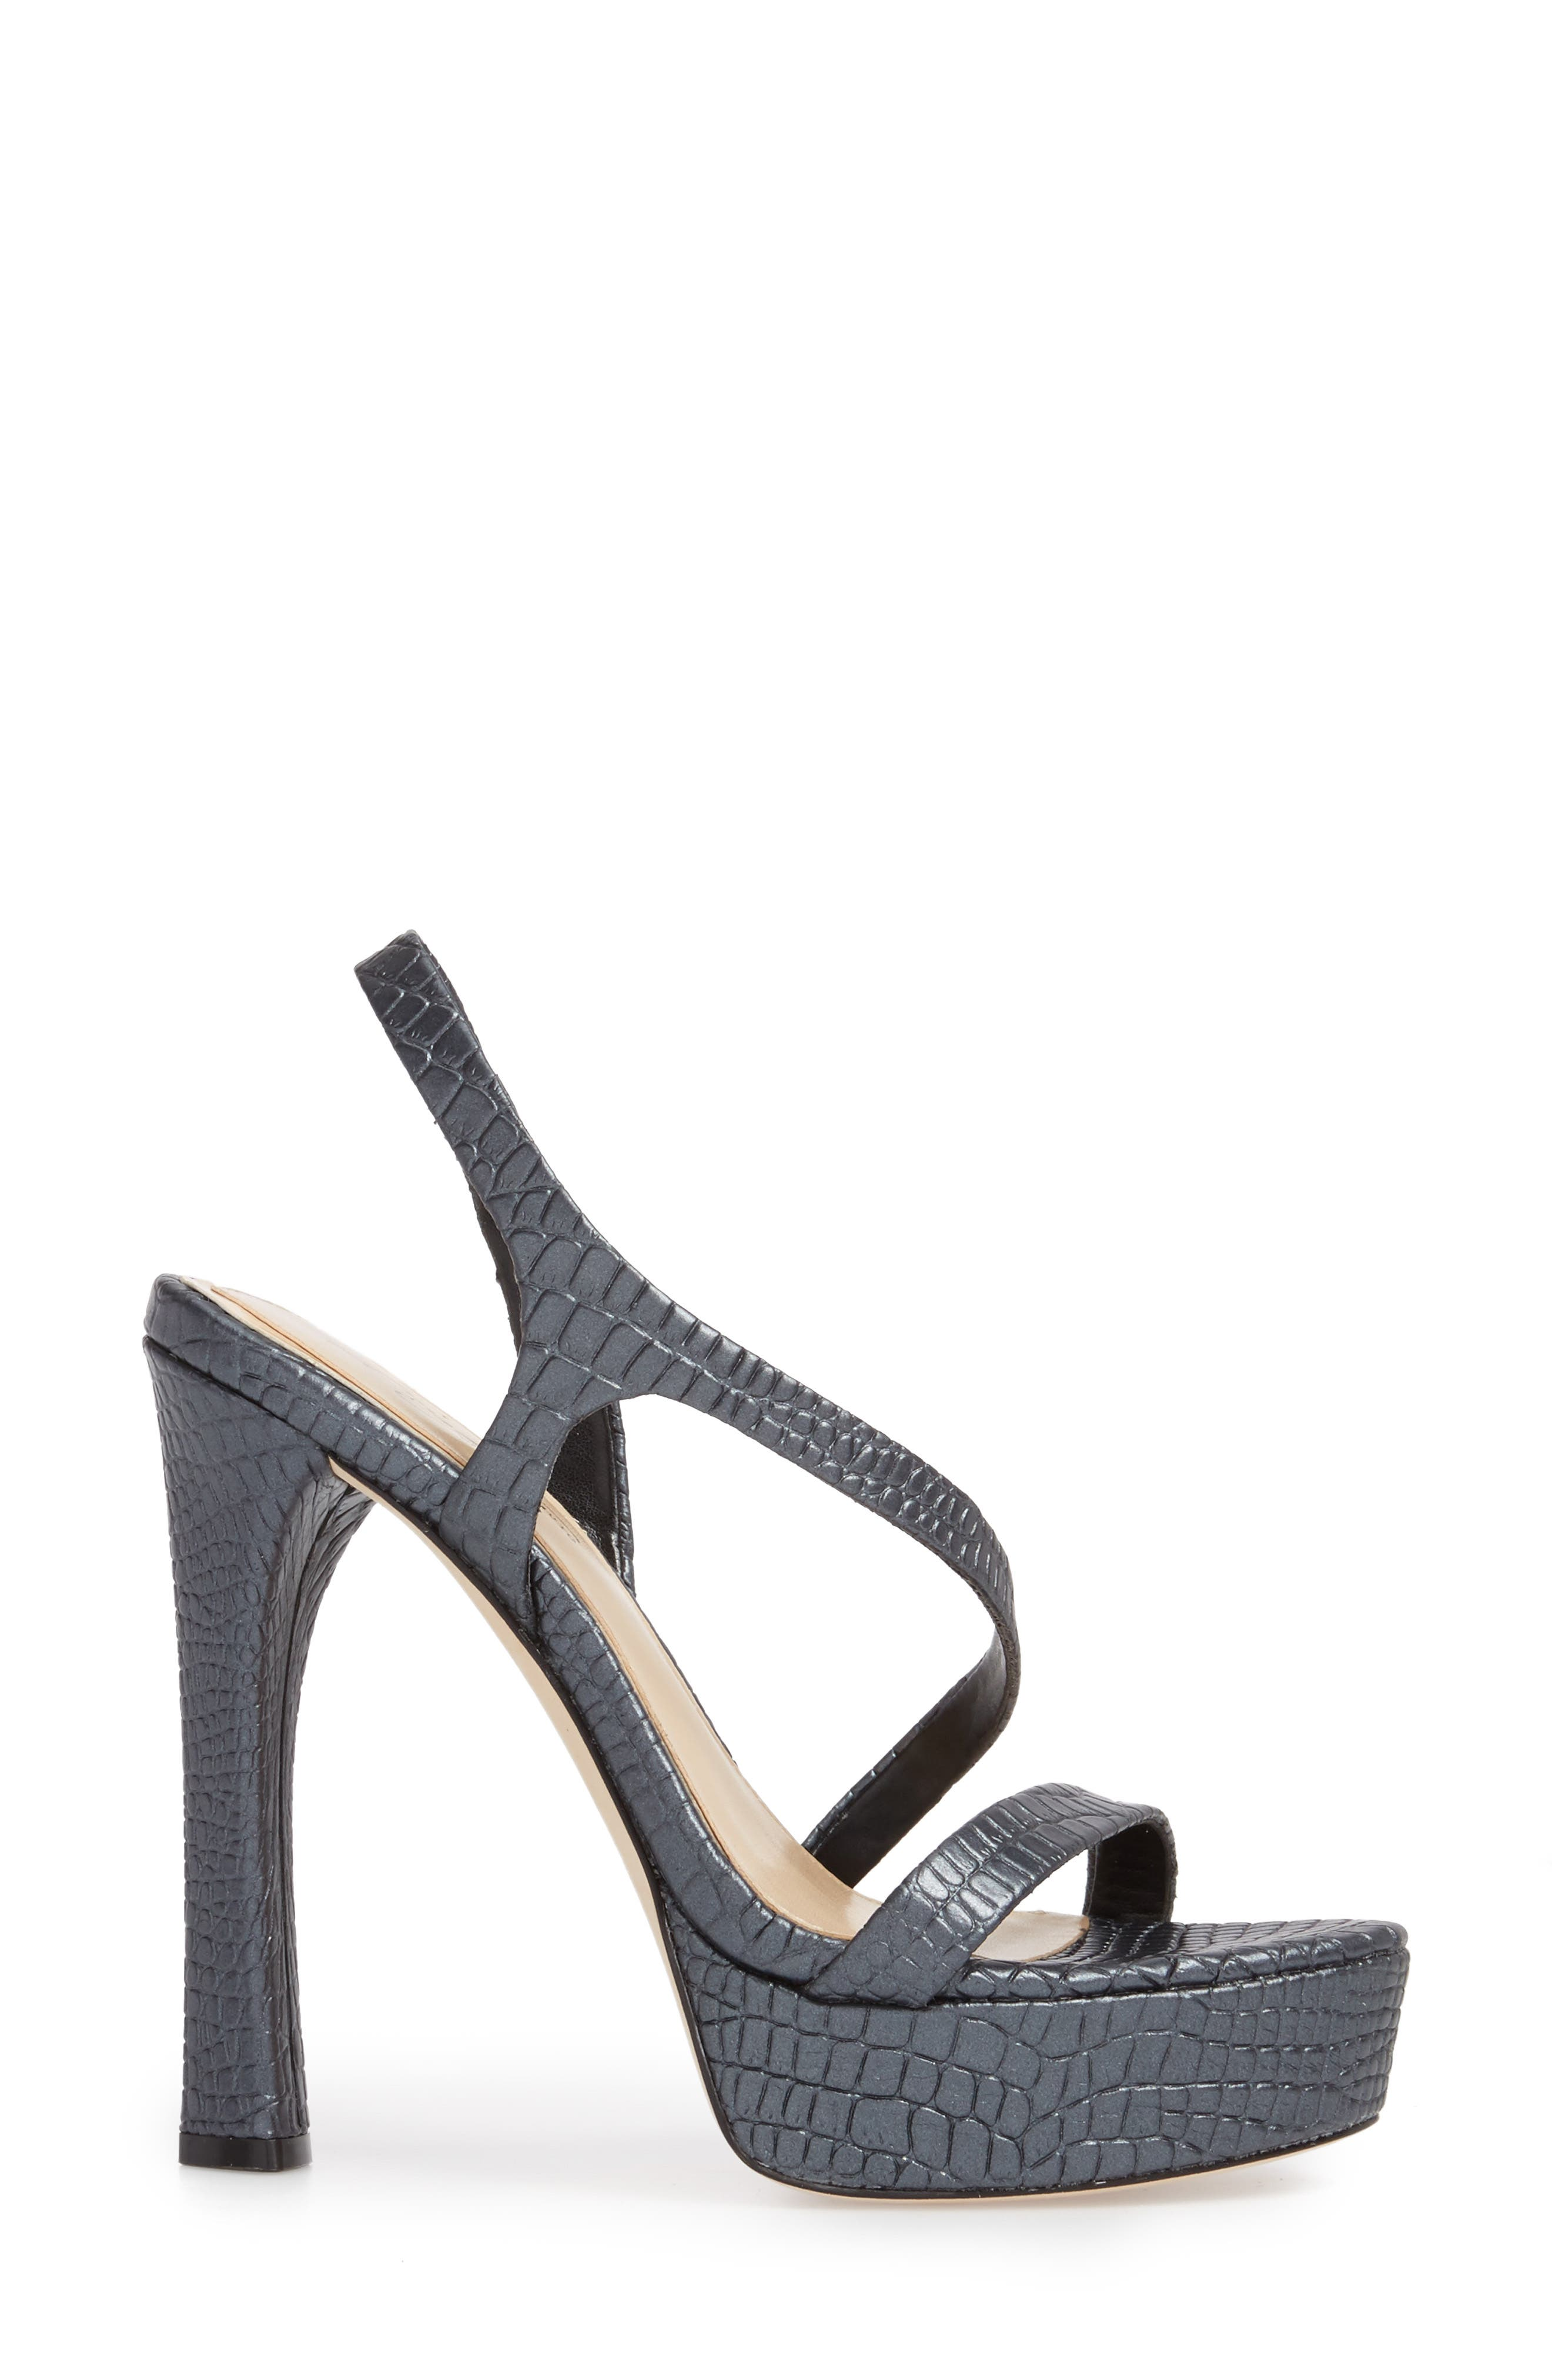 Prent Asymmetrical Platform Sandal,                             Alternate thumbnail 3, color,                             BLACK LEATHER